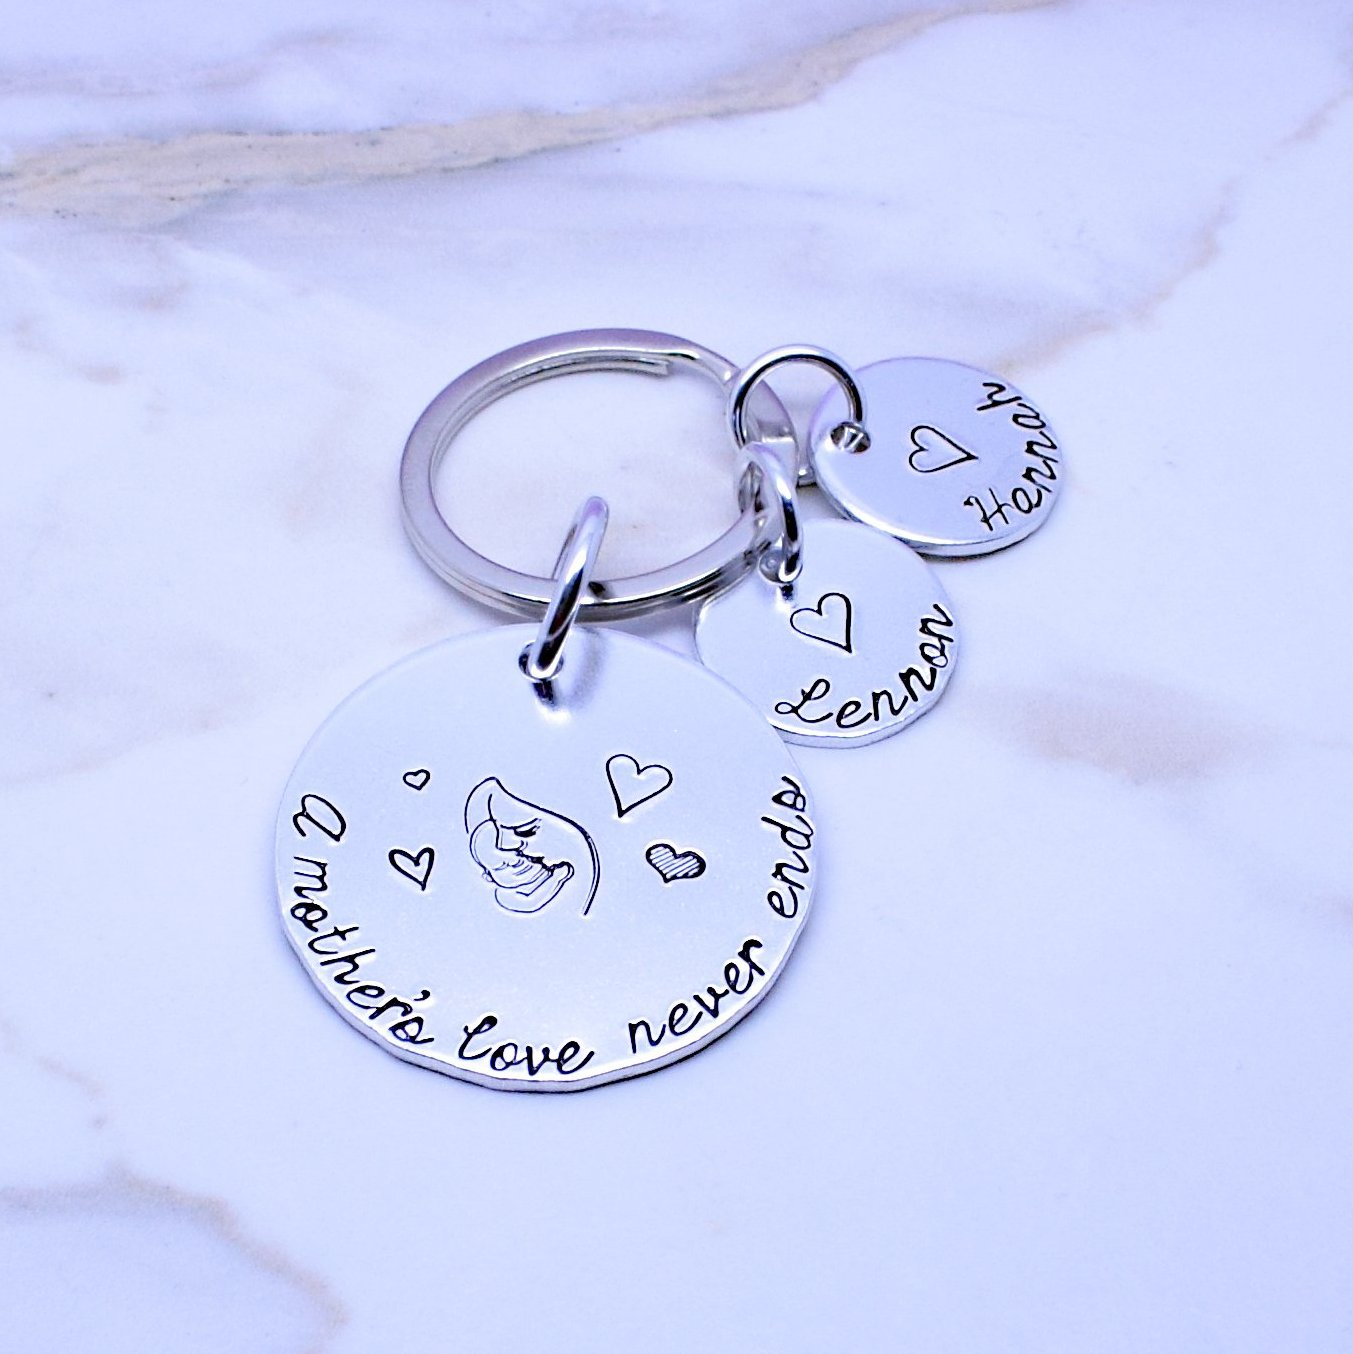 A Mother's Love Never Ends Personalised Keyring, This Mummy Belongs To Keyring, Mum Mom Mummy Stepmum Keyring, Personalised Mum Gift, Personalised Mothers Day, Gift For Mum, Keychain